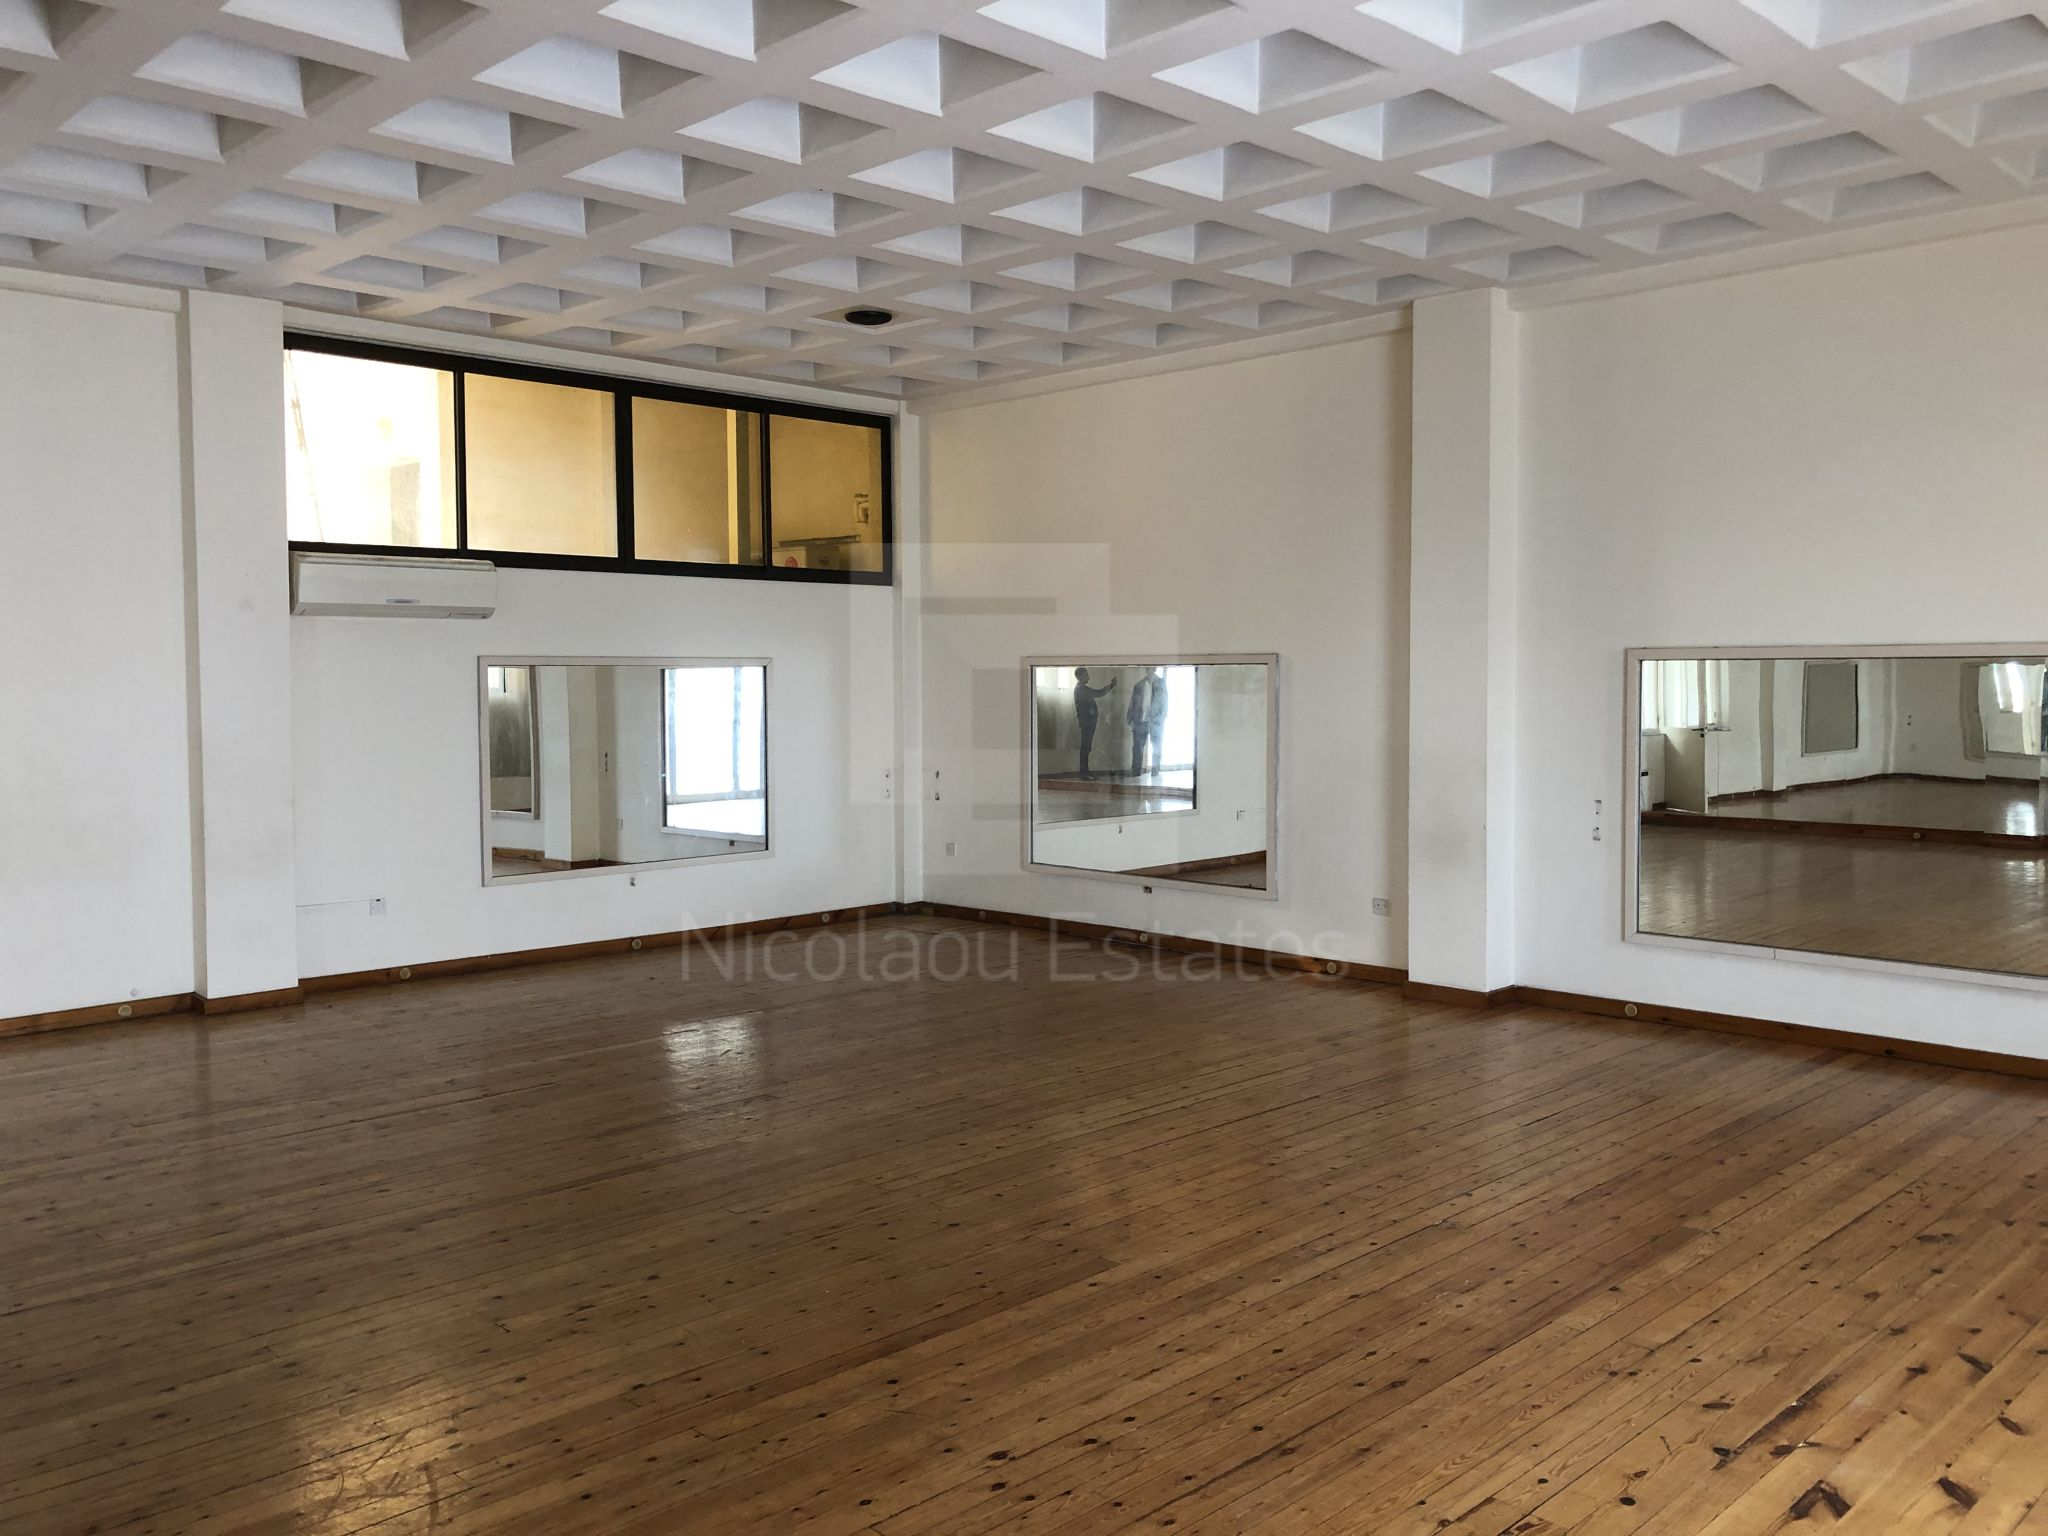 Large office for rent in city center good for ballet, martial sport or gym